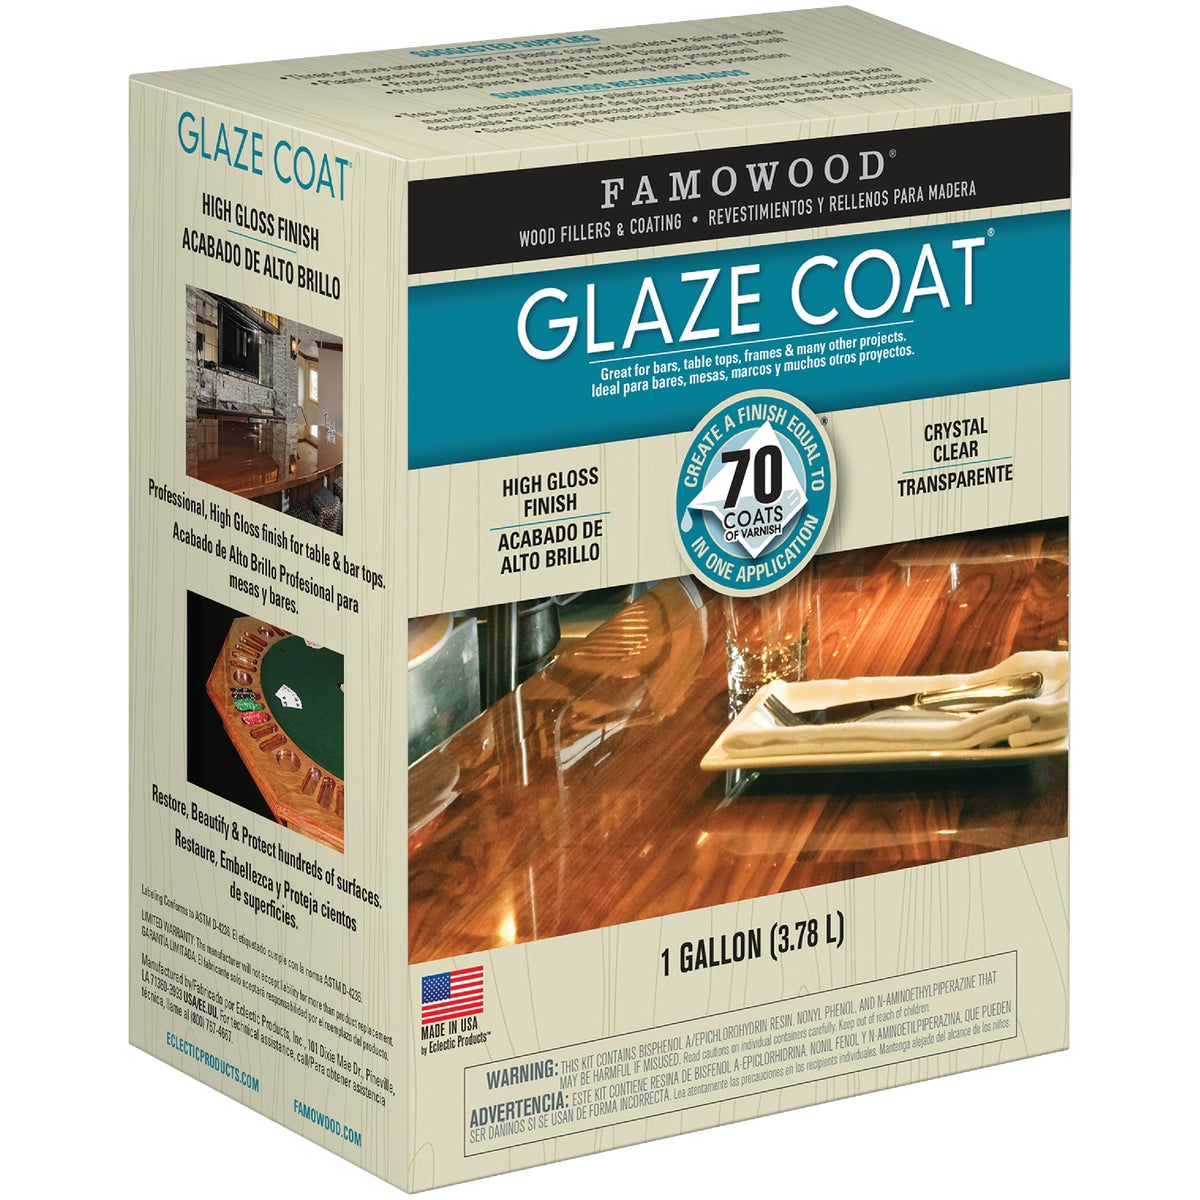 GAL CLR POUR-ON COATING